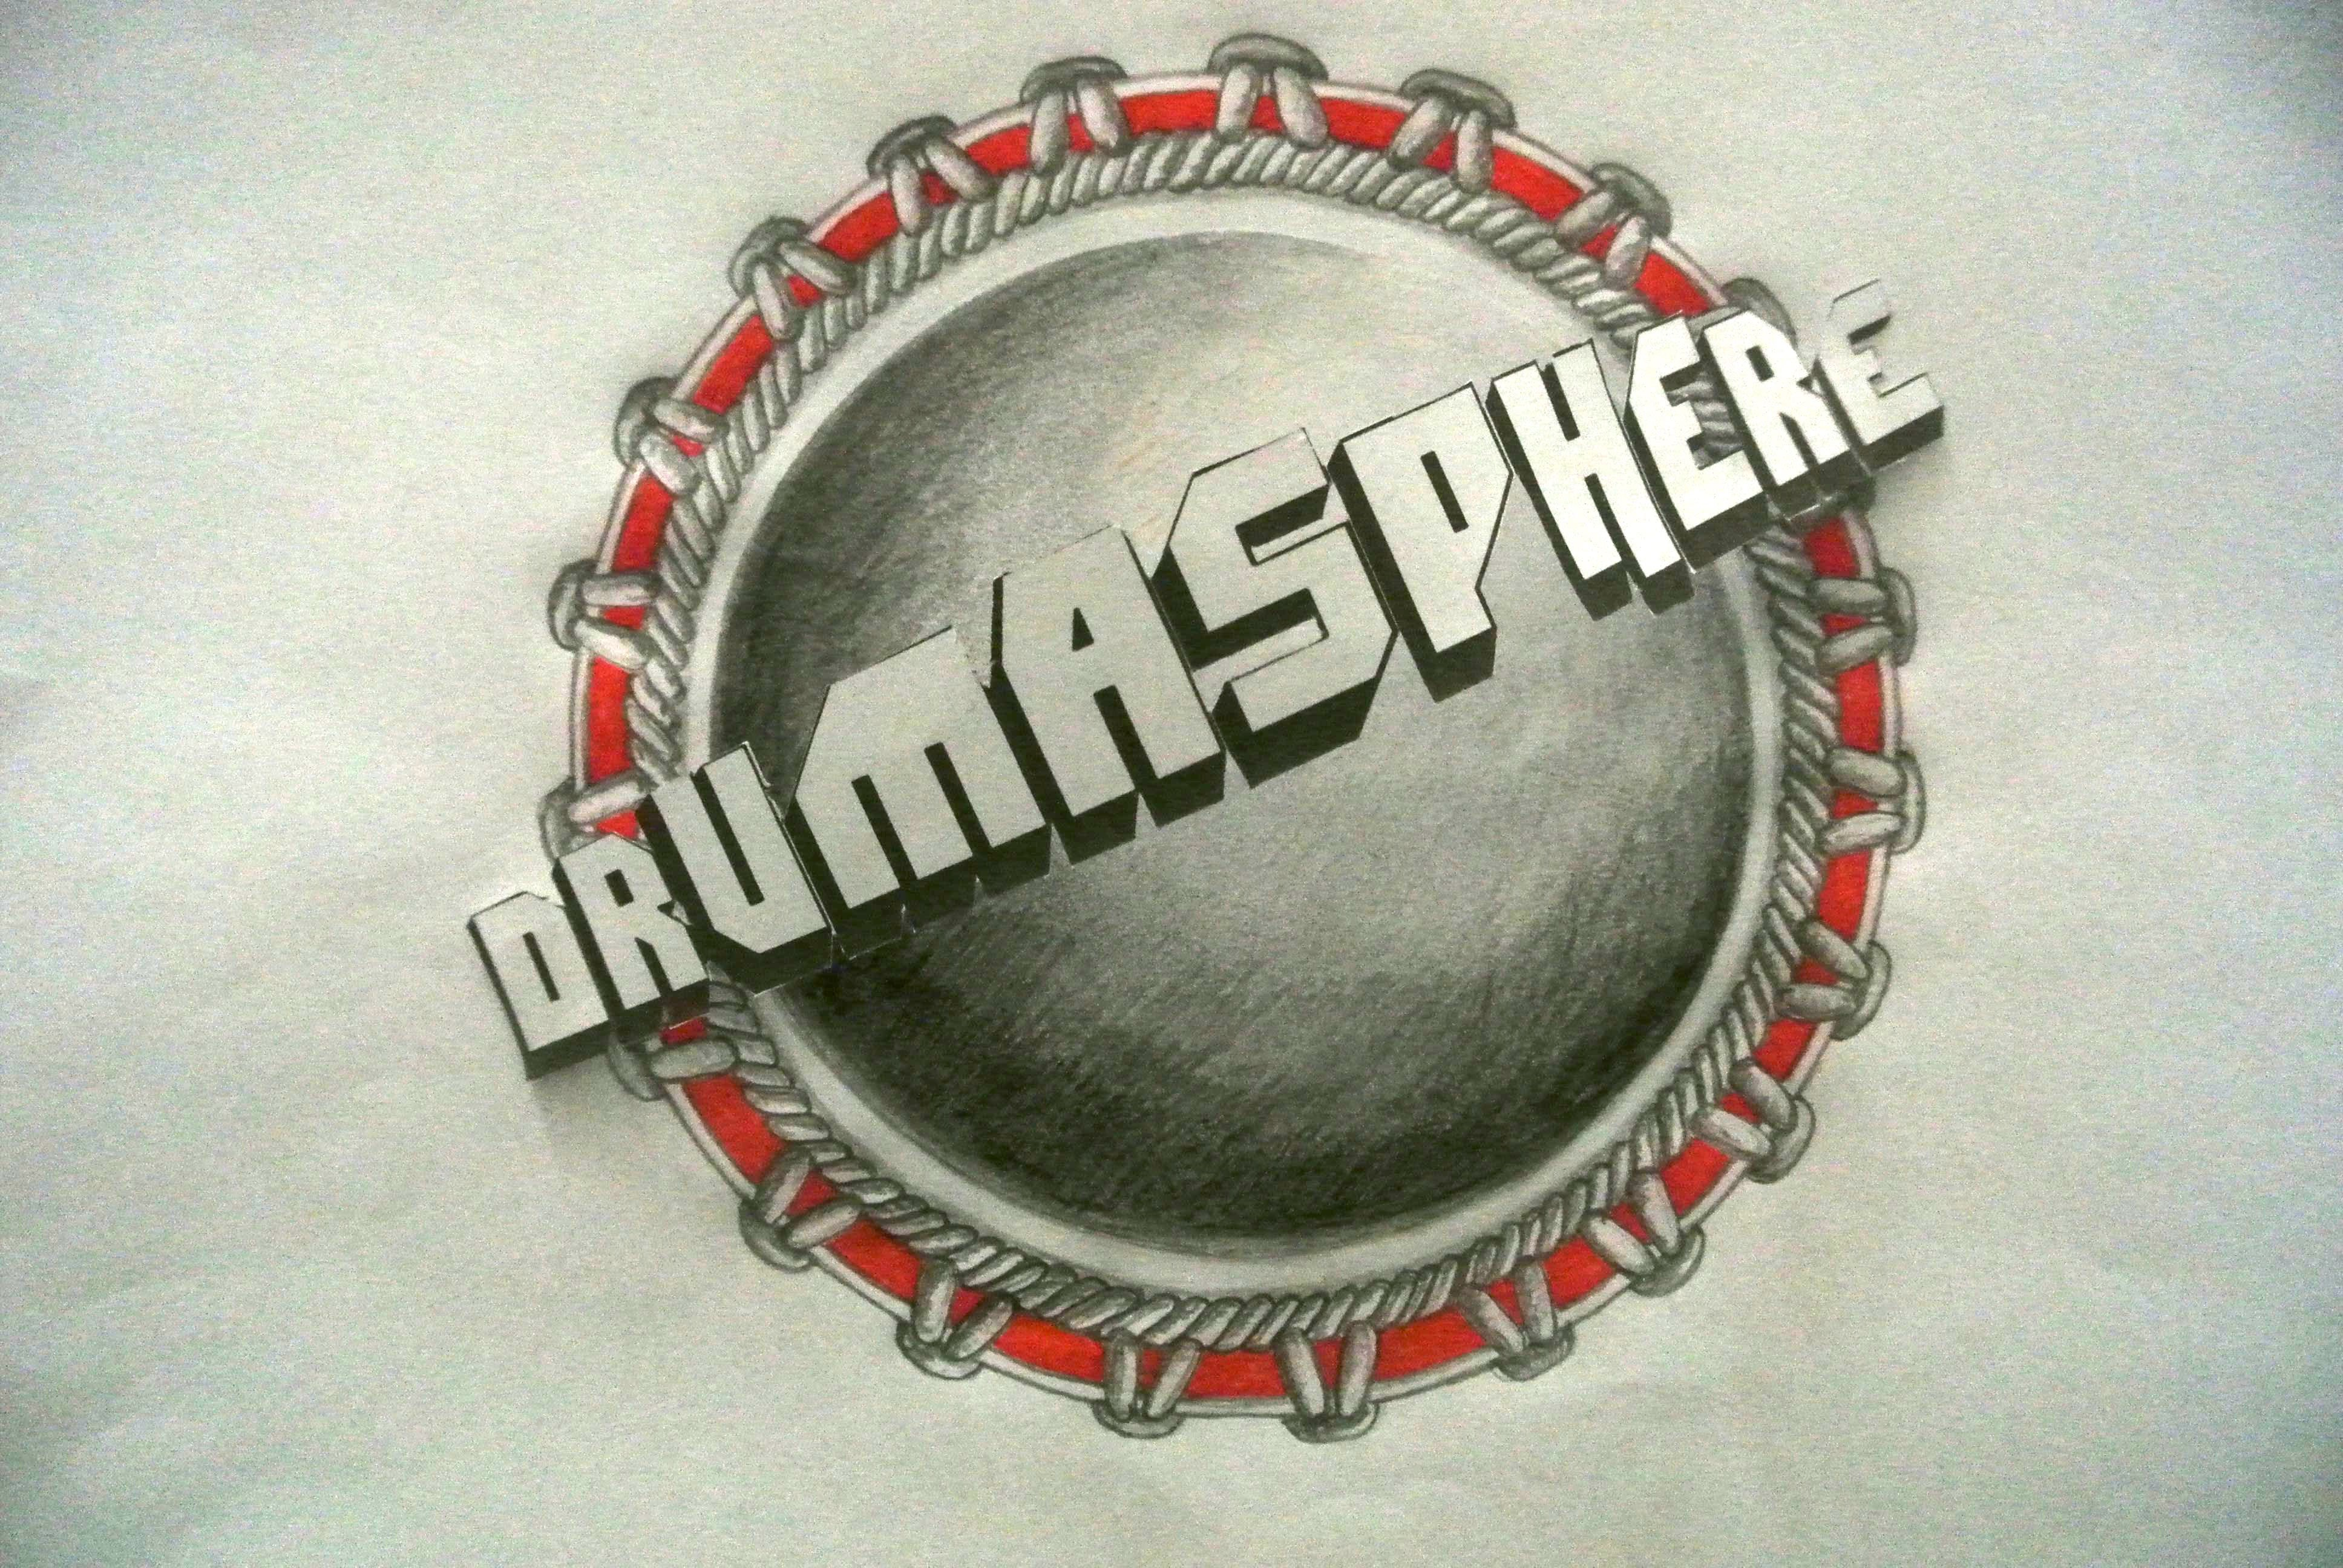 DrumaSphere to Perform at The Mall Walthamstow